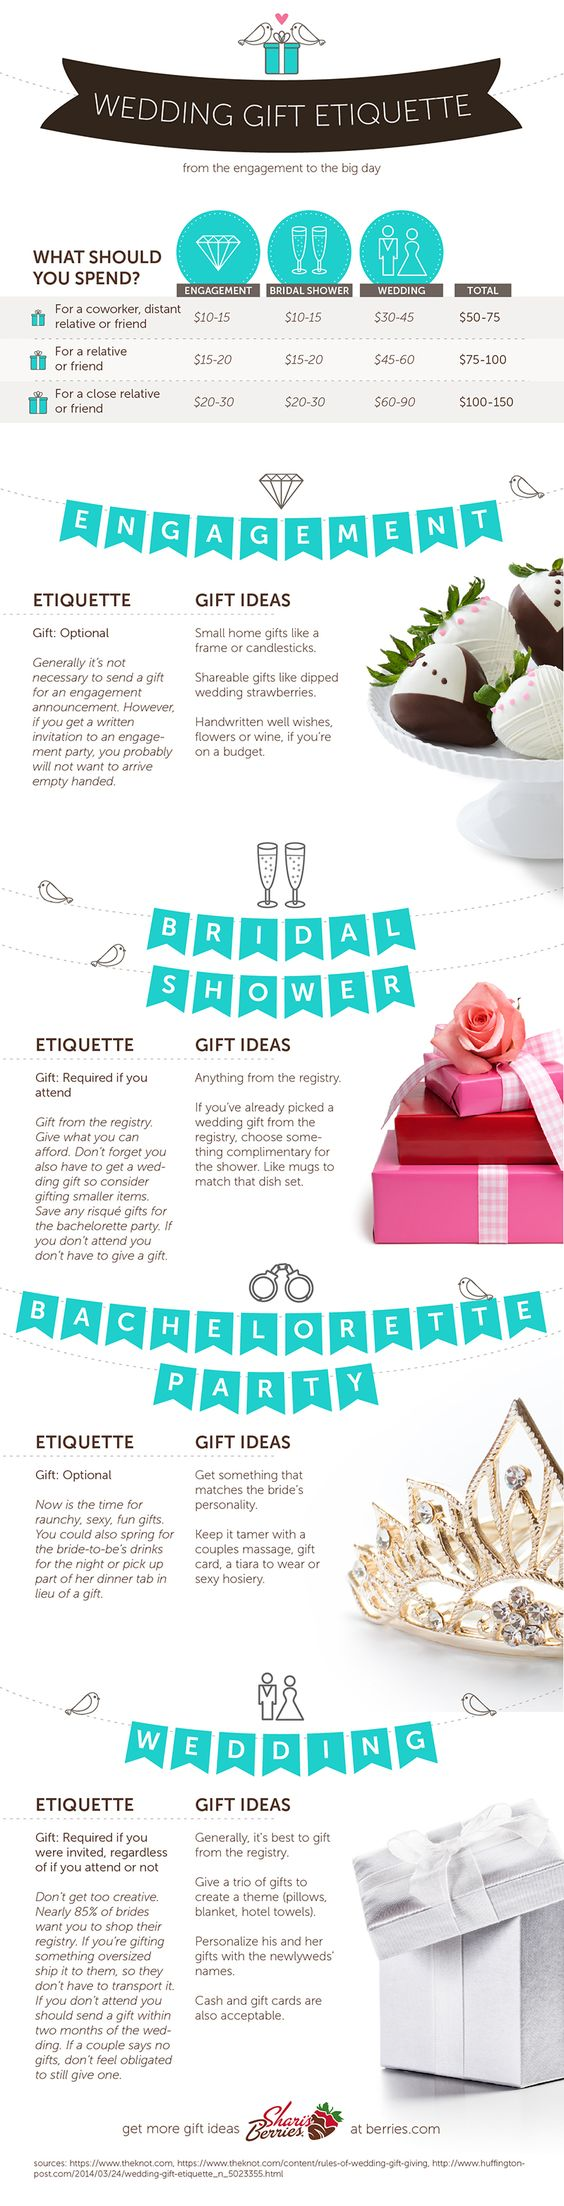 Proper Etiquette For Wedding Gift If Not Attending : Wedding Gift Guide and EtiquetteDo I need a gift for the bridal ...